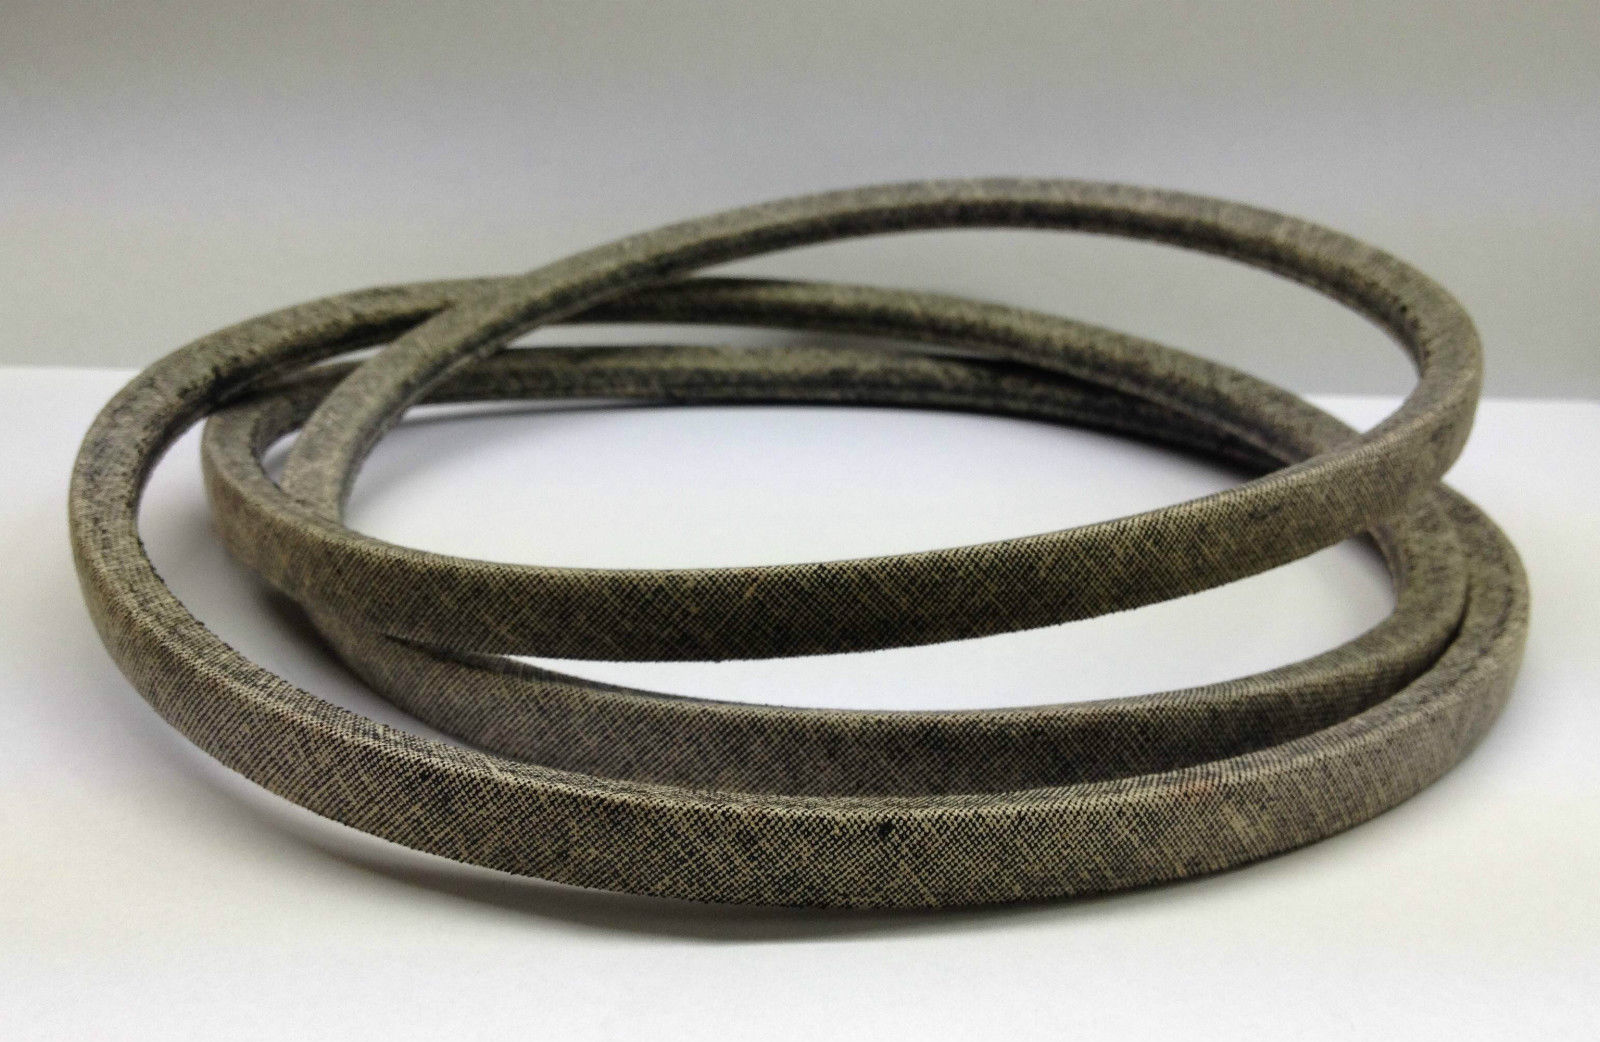 75404062 MTD LAWNFLITE DECK DRIVE BELT 700 SERIES 2005 ONWARDS M